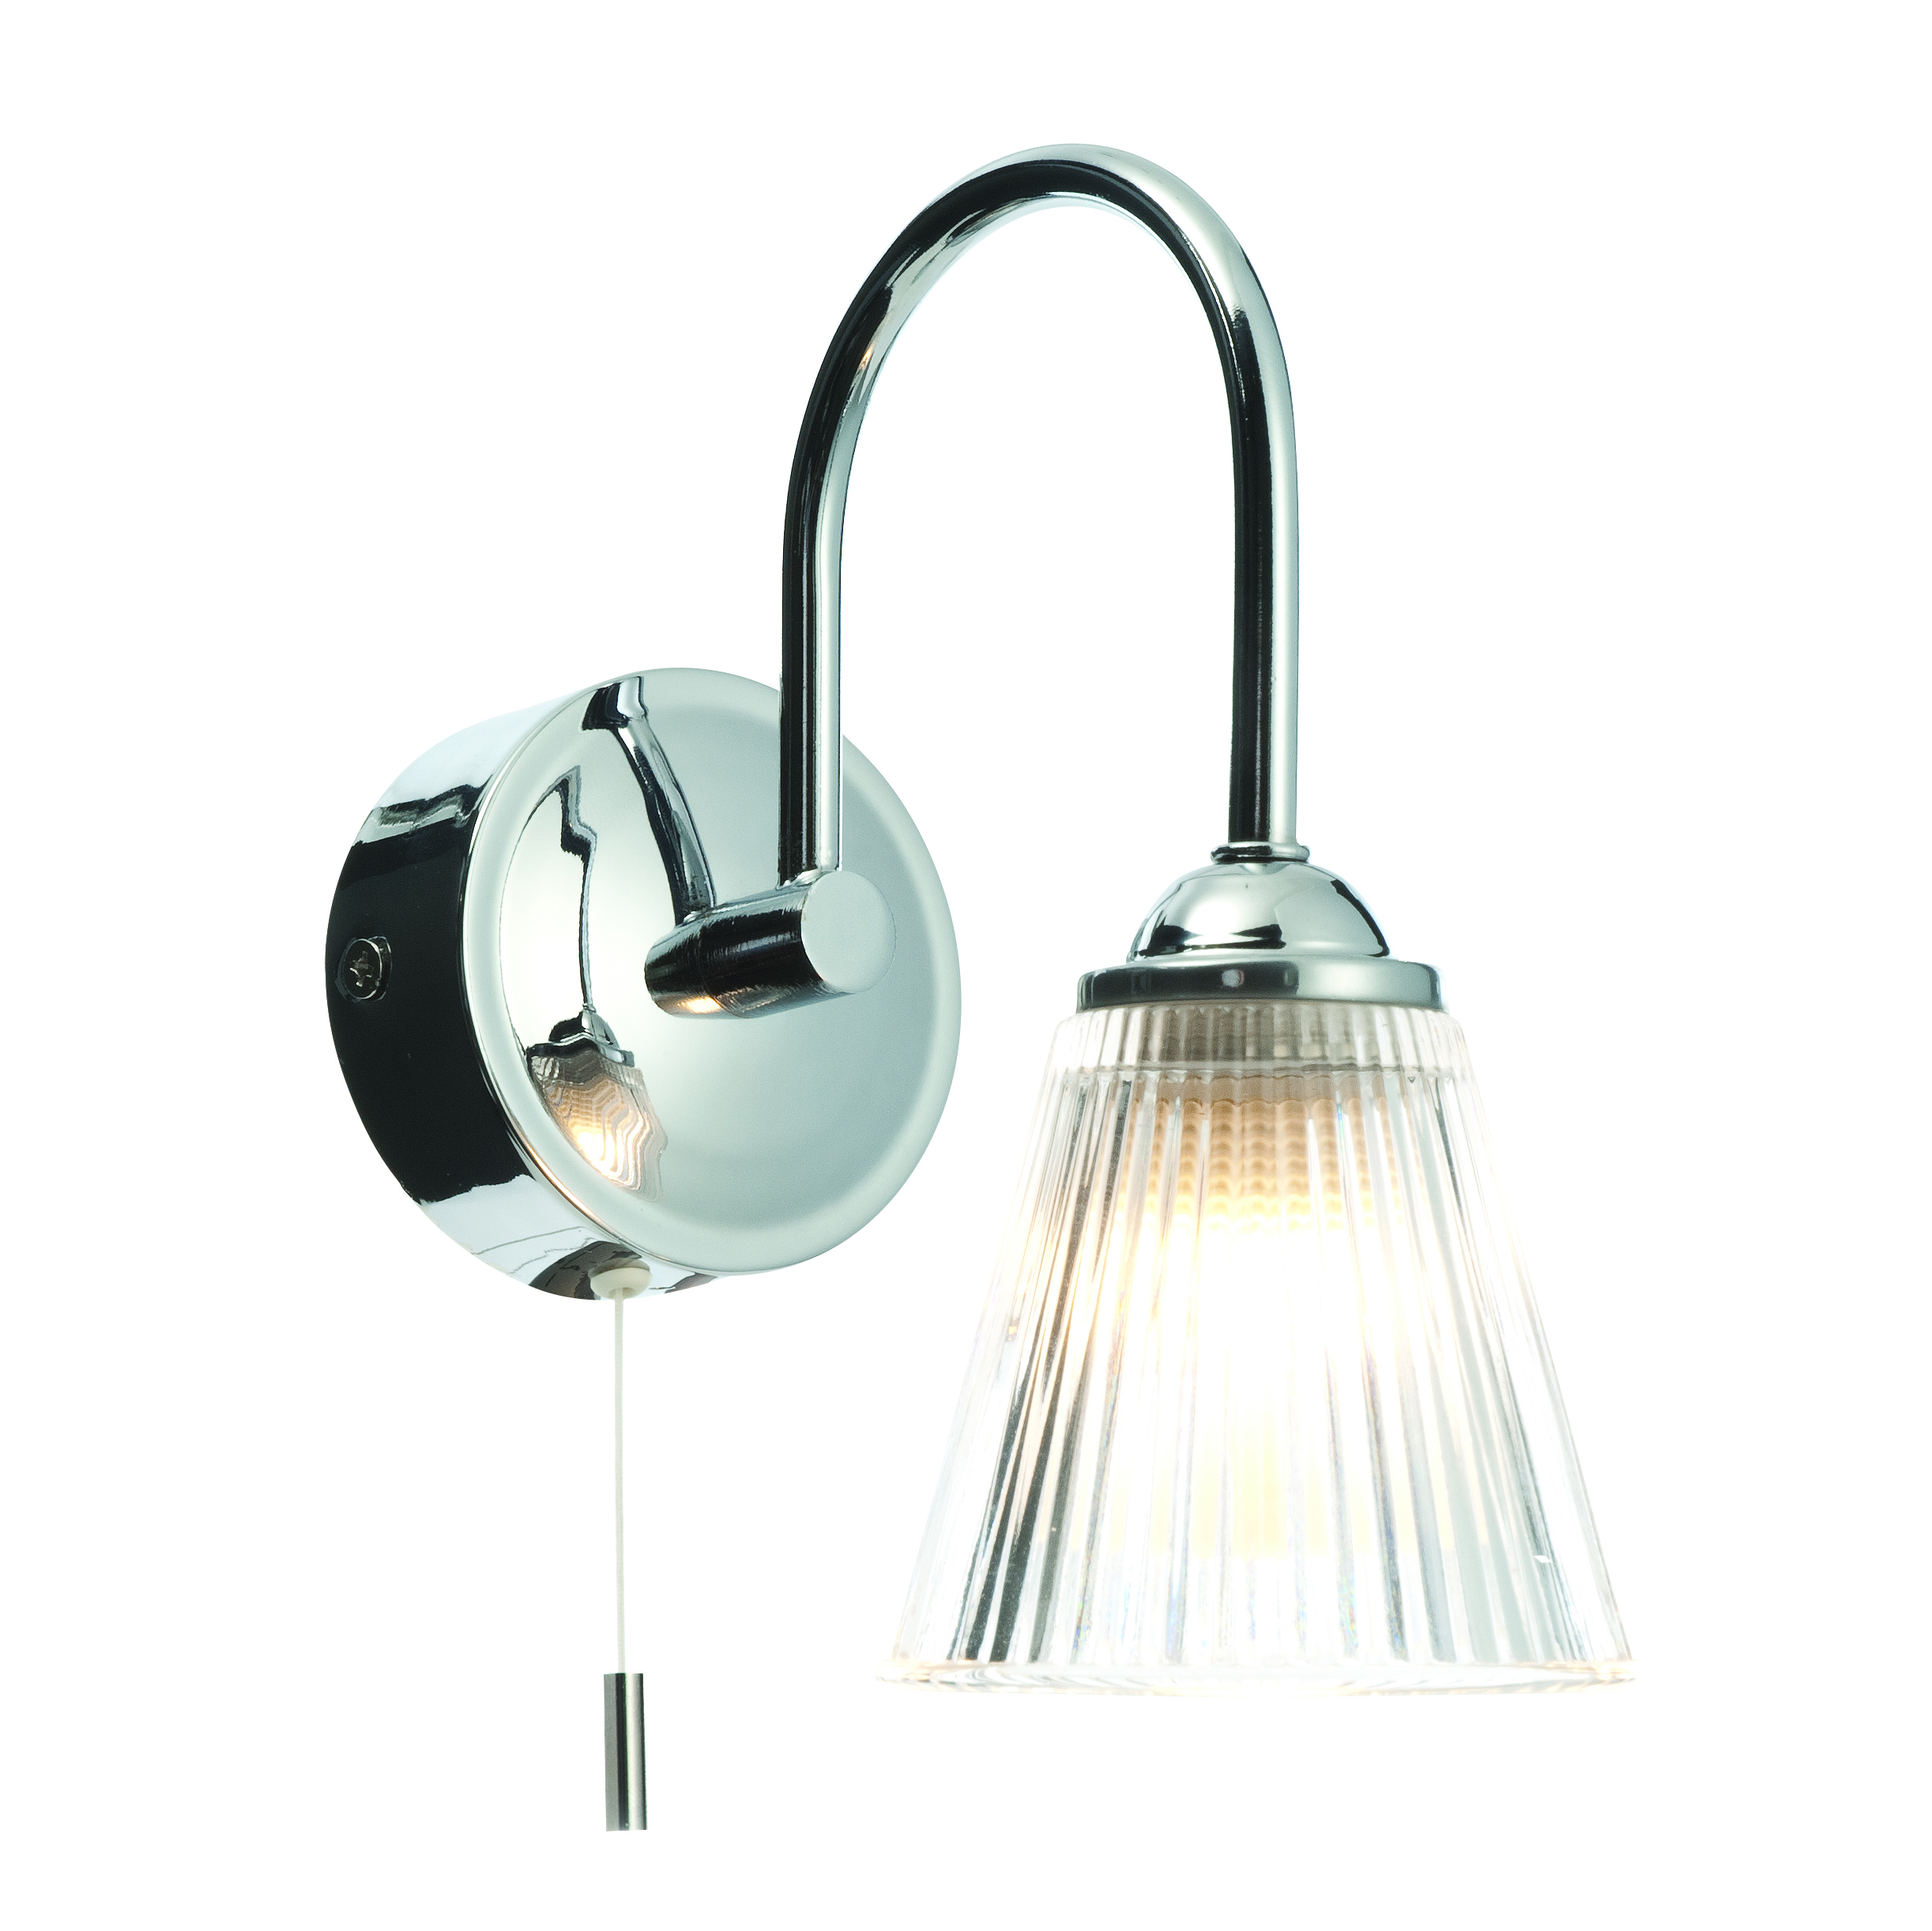 Modern Chrome and Ribbed Glass IP44 Bathroom Wall Light With Pull Cord Switch eBay